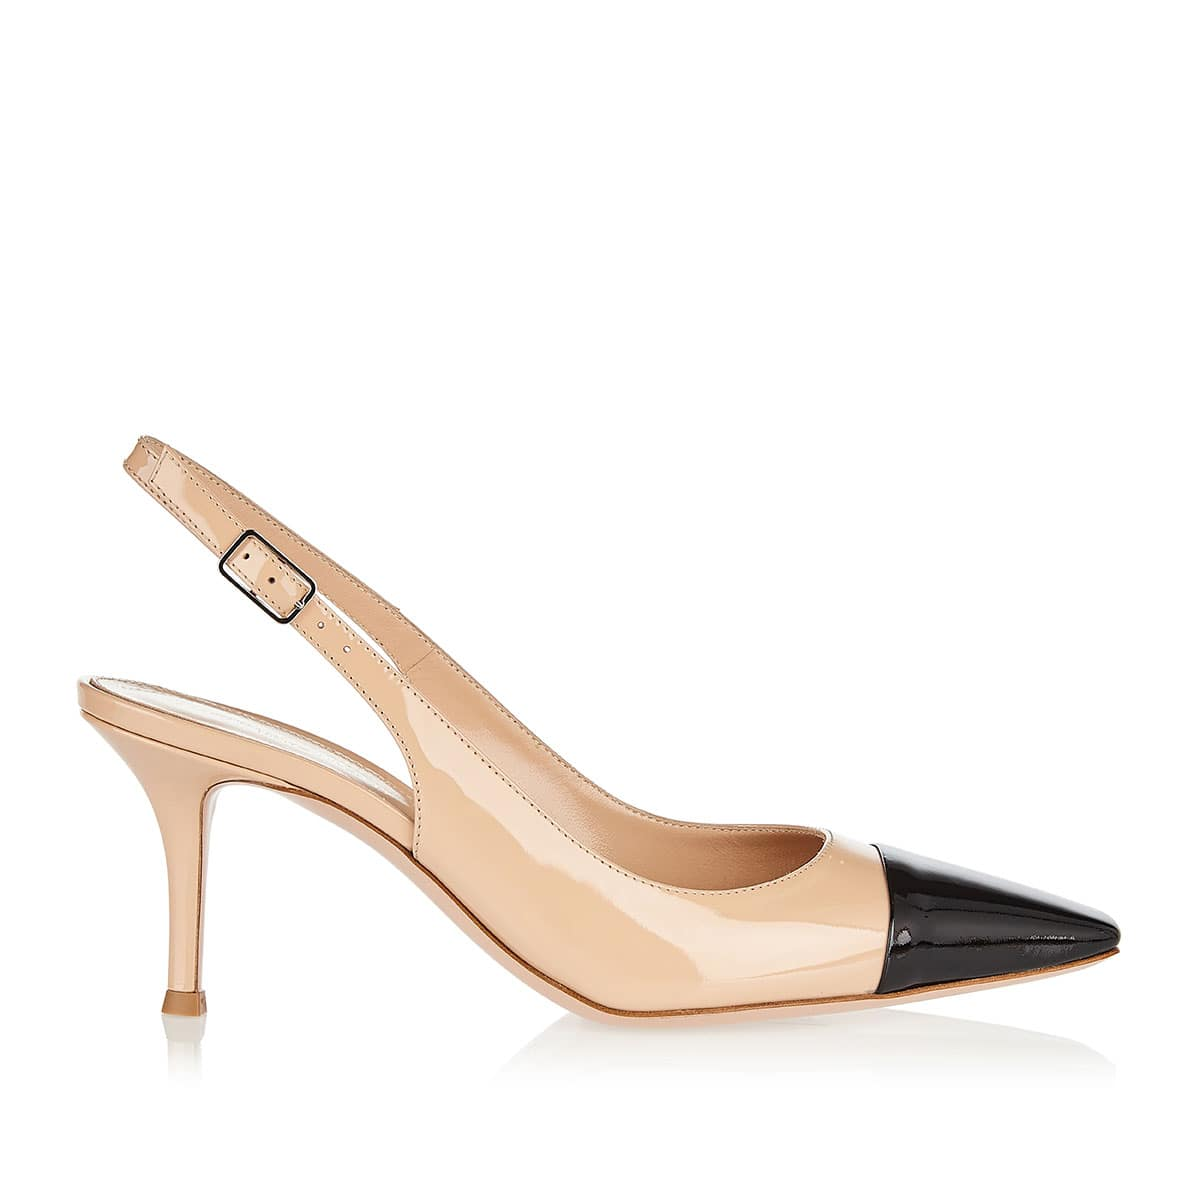 Lucy 70 patent leather slingback pumps